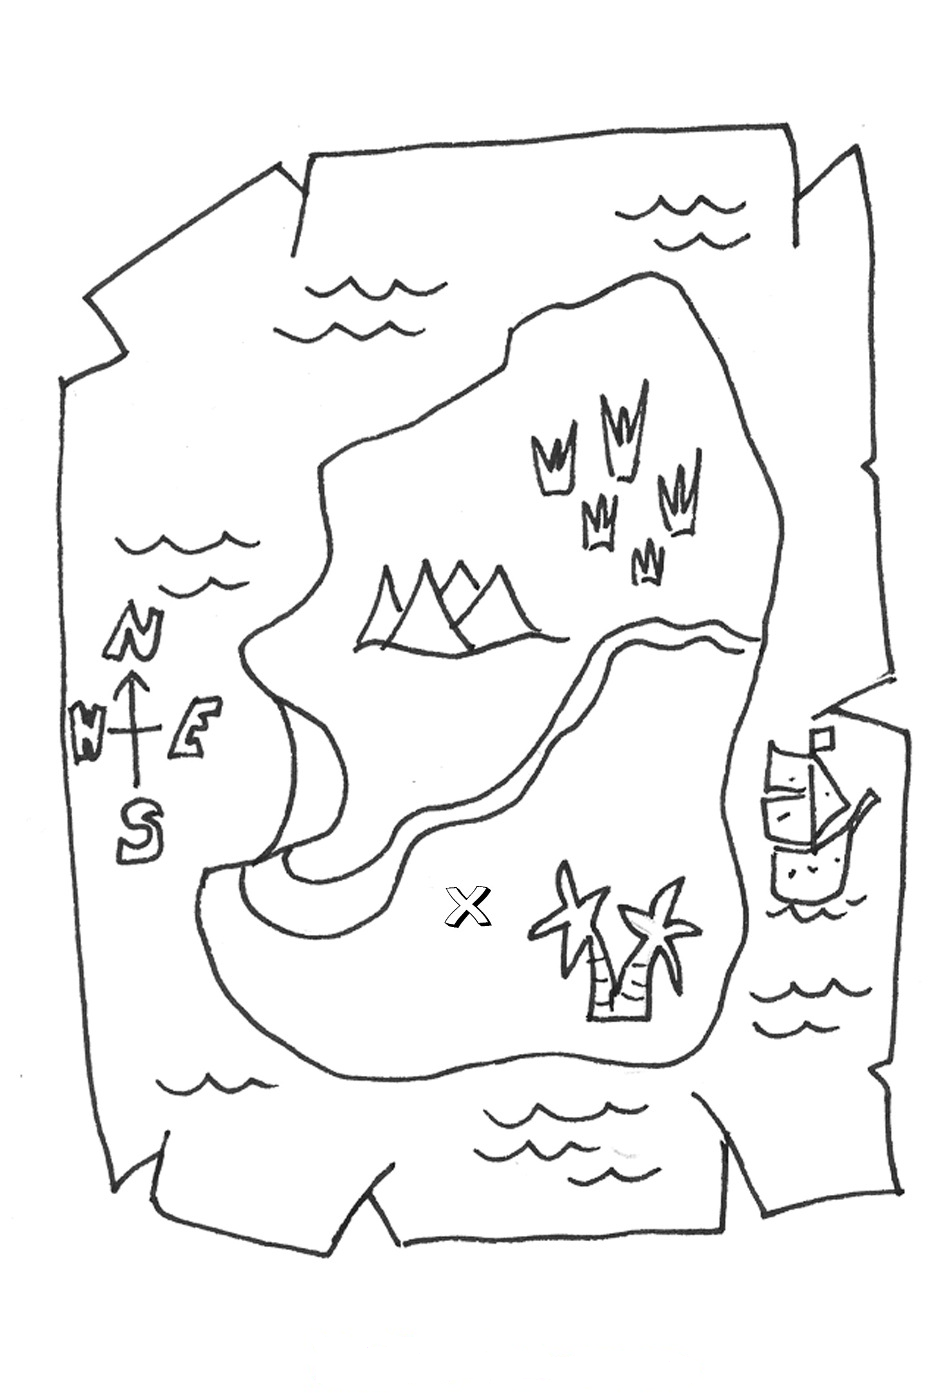 pirate map coloring page treasure map coloring pages to download and print for free coloring page pirate map